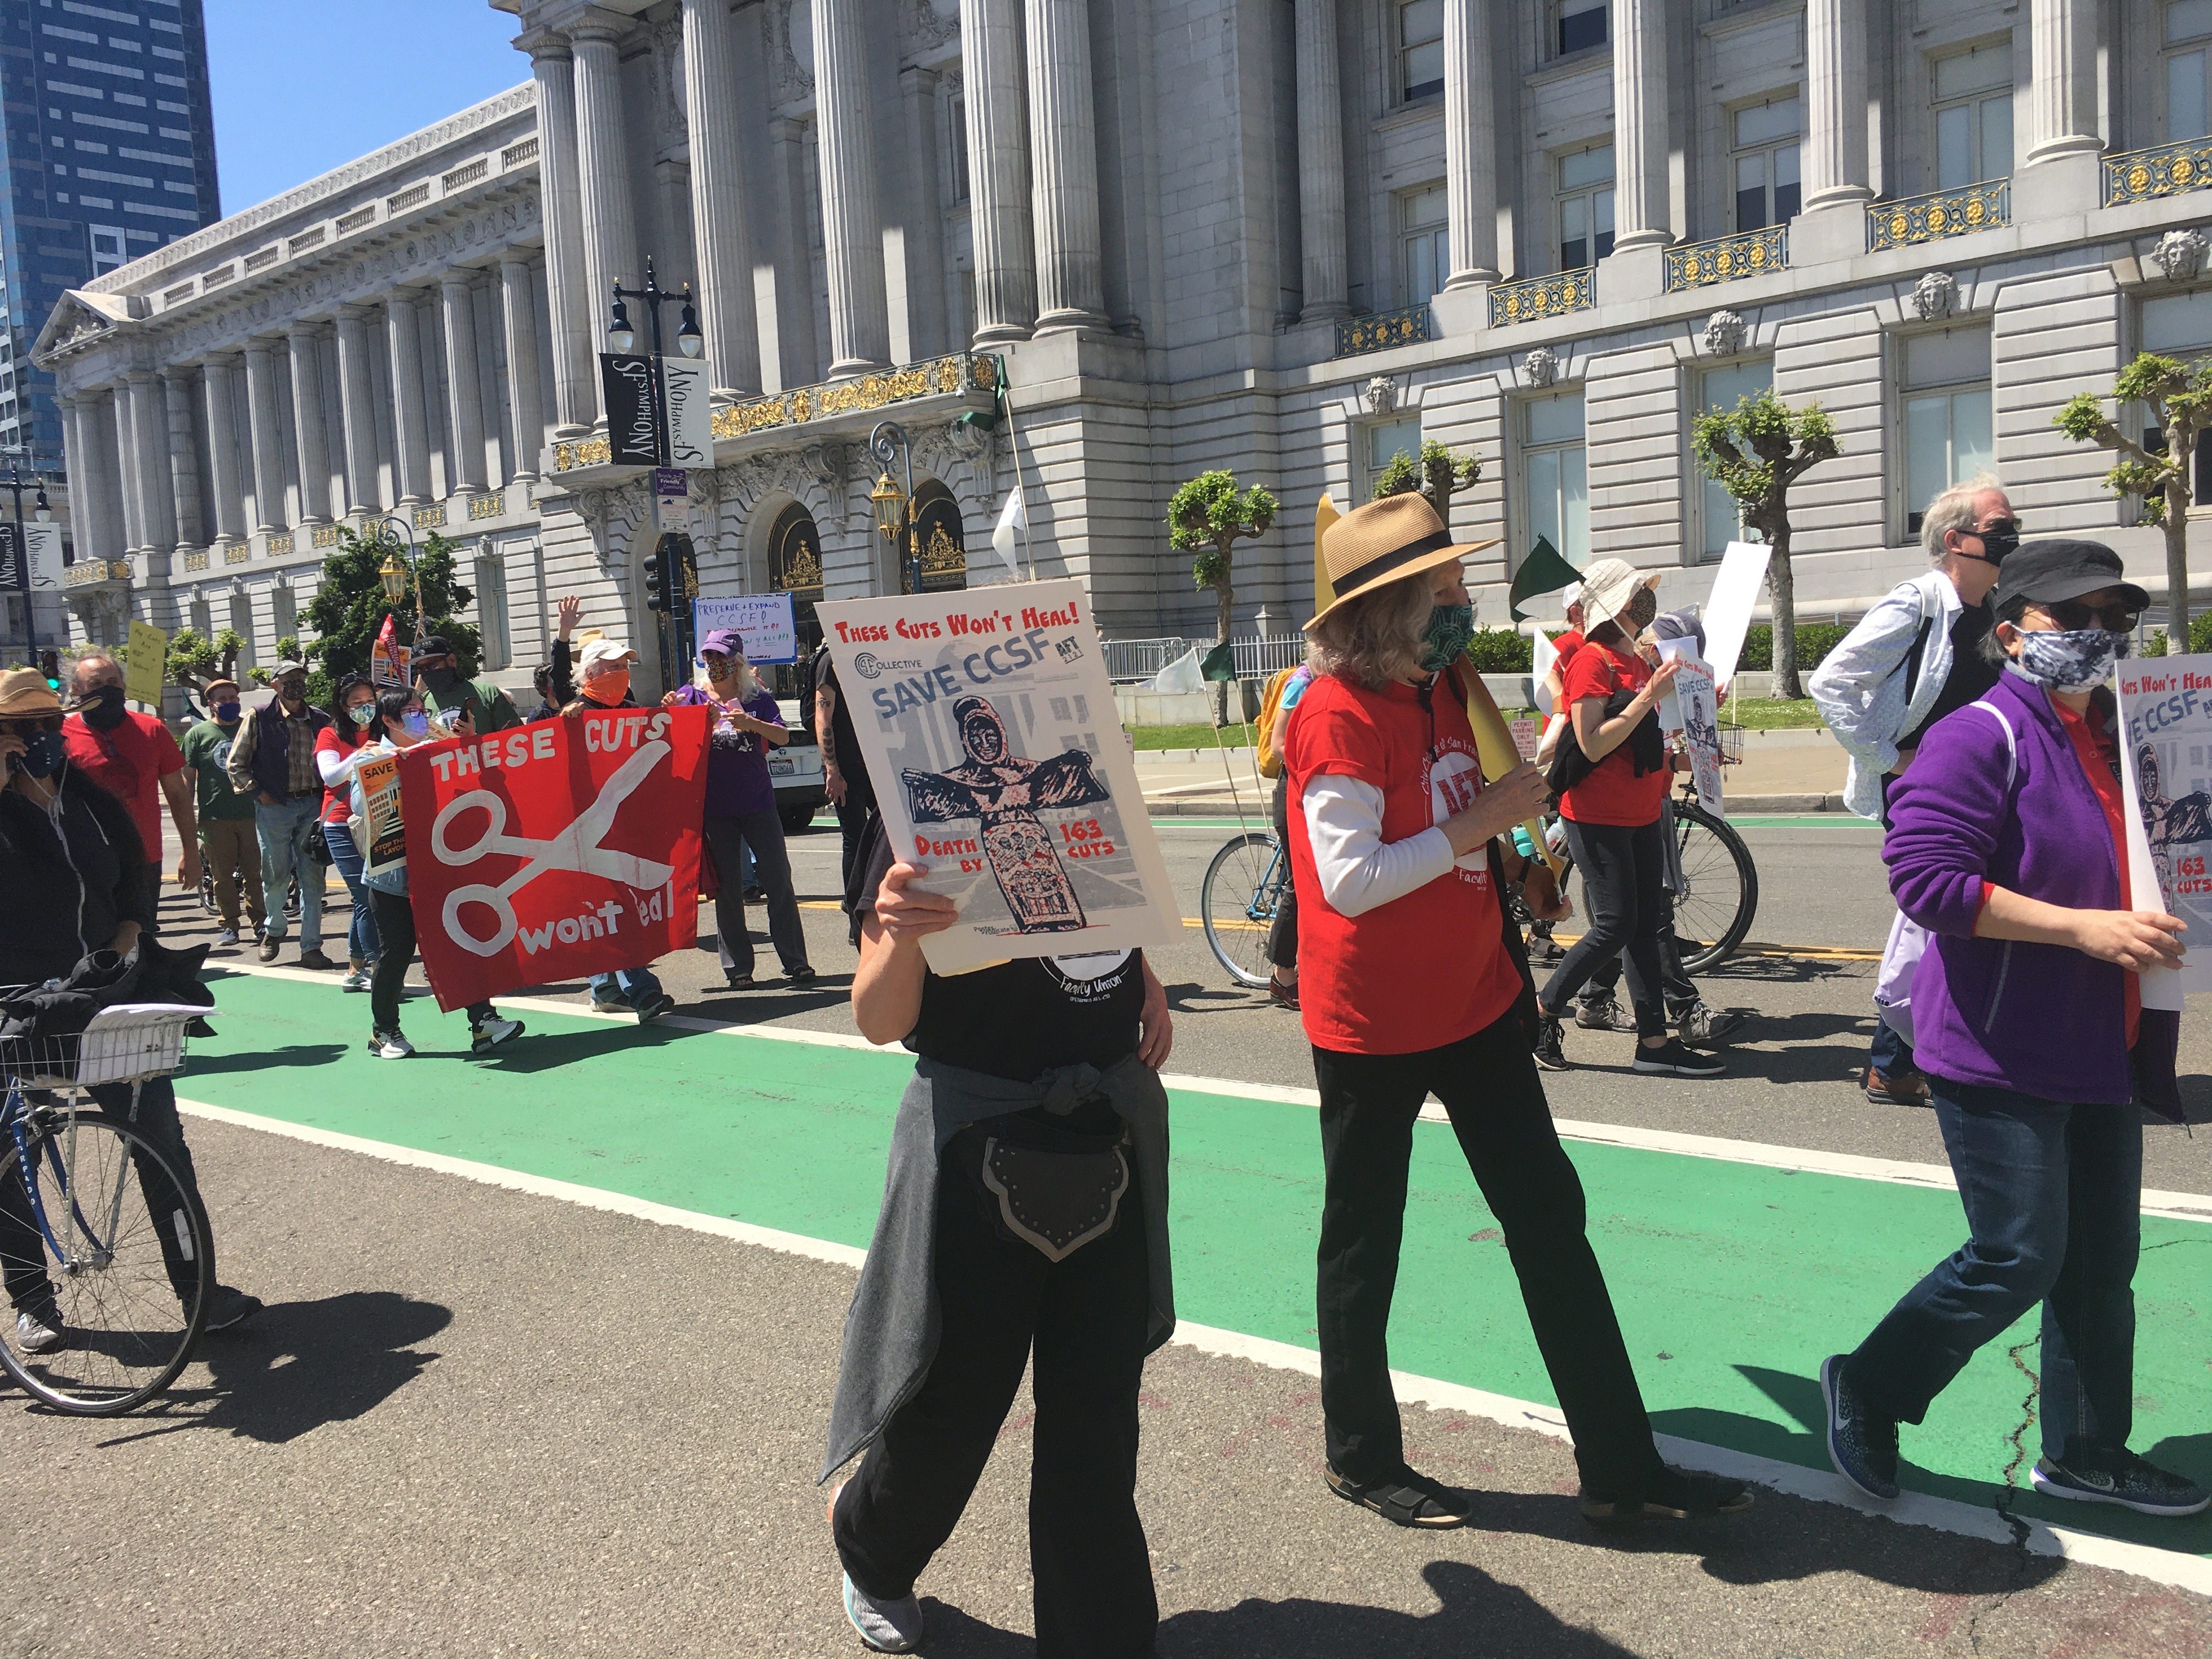 Ccsf 2022 Calendar.Faculty Students Rally Speak Out As Aft 2121 Leaders Make Major Concessions On Salaries Indybay